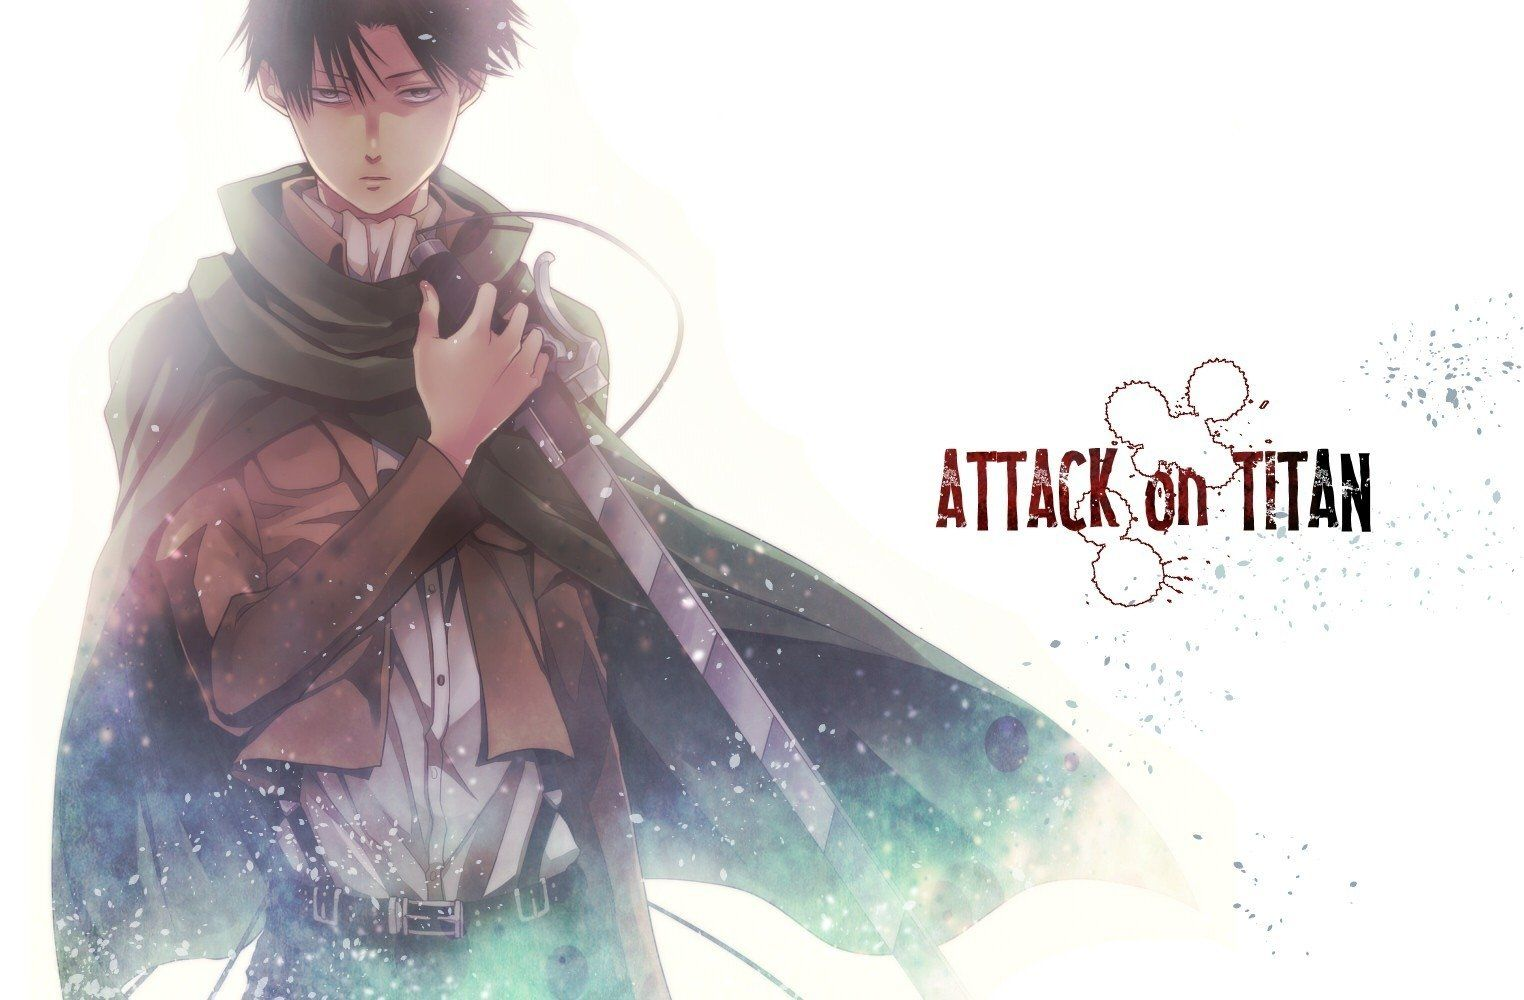 Anime Attack On Titan Levi Ackerman Attack On Titan Shingeki No